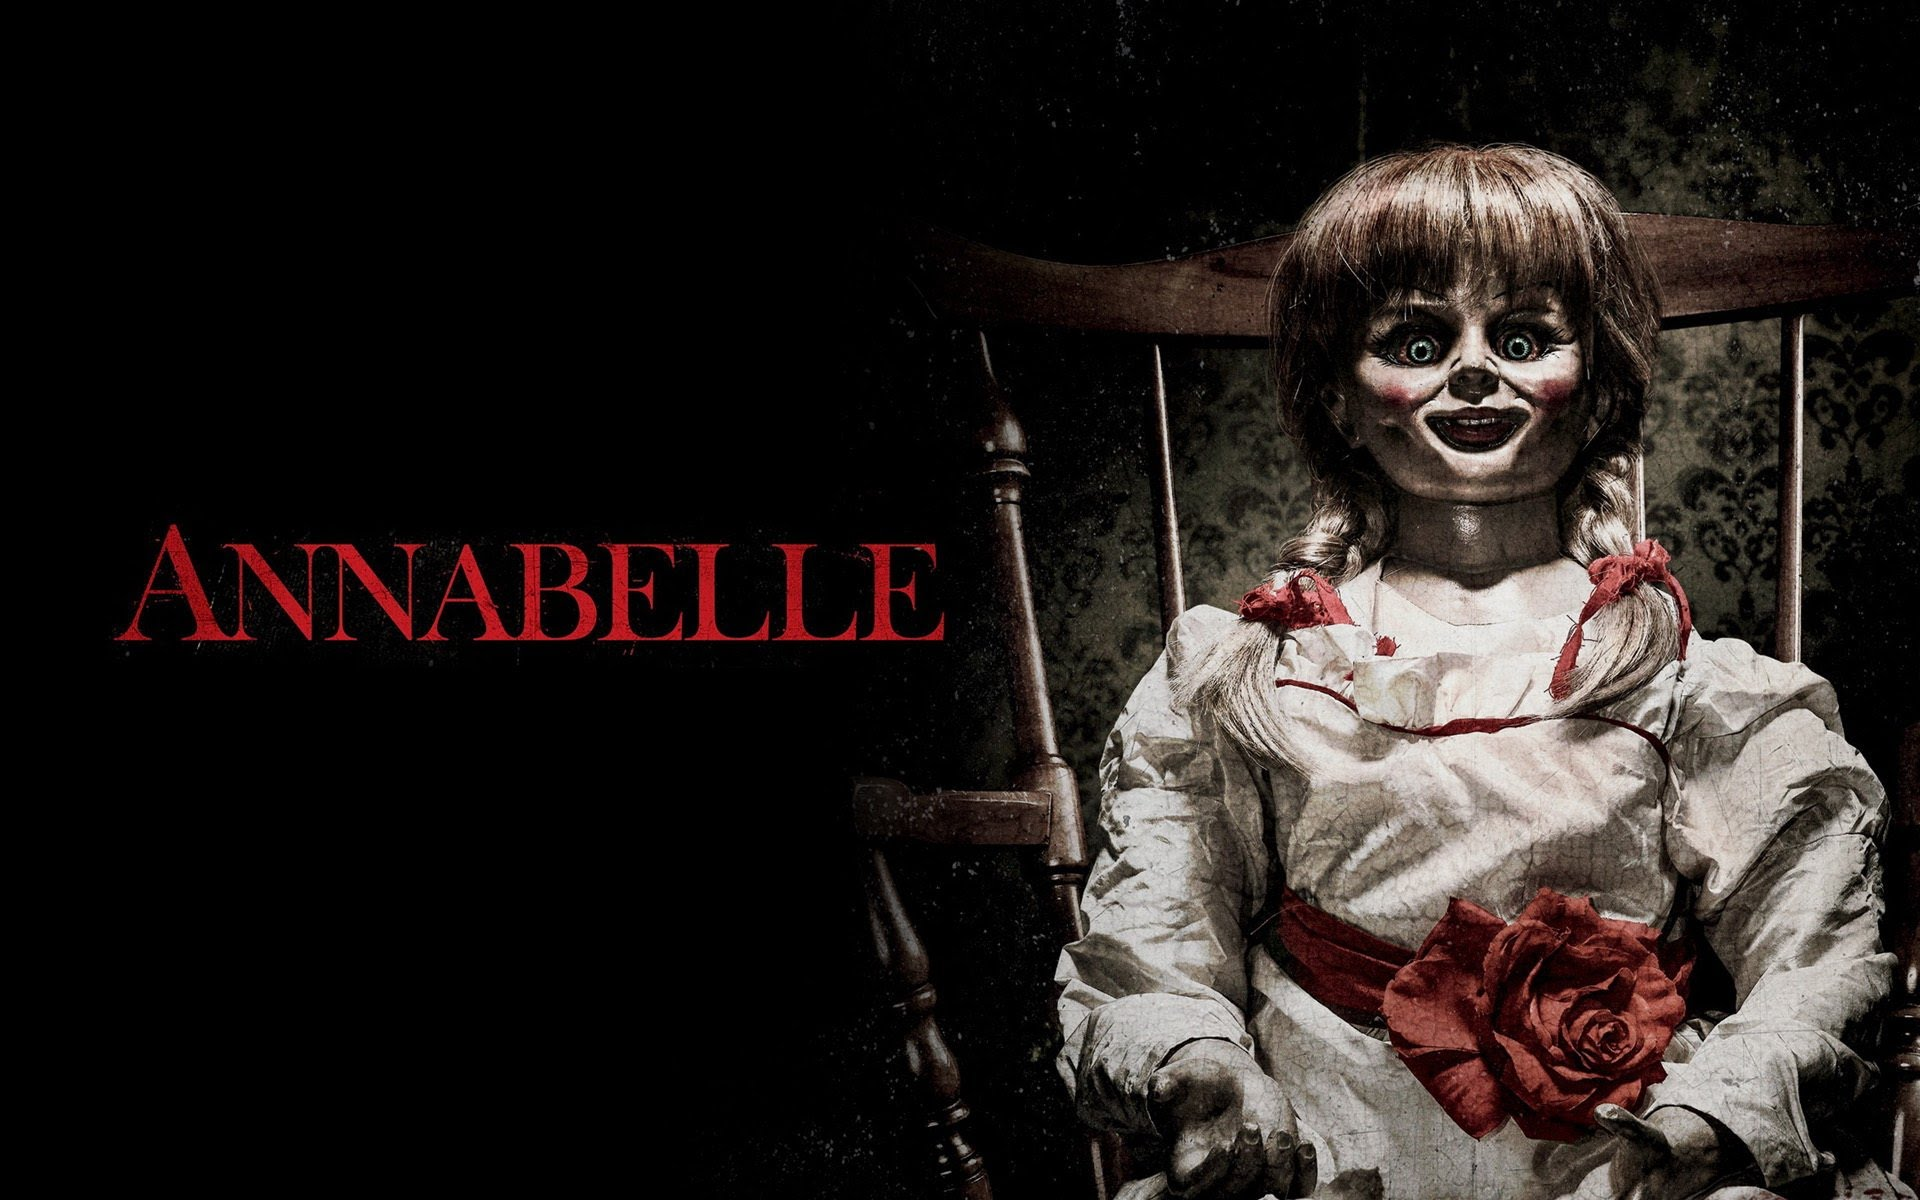 Annabelle 2014 A Prequel To The Conjuring Review Cinecelluloid